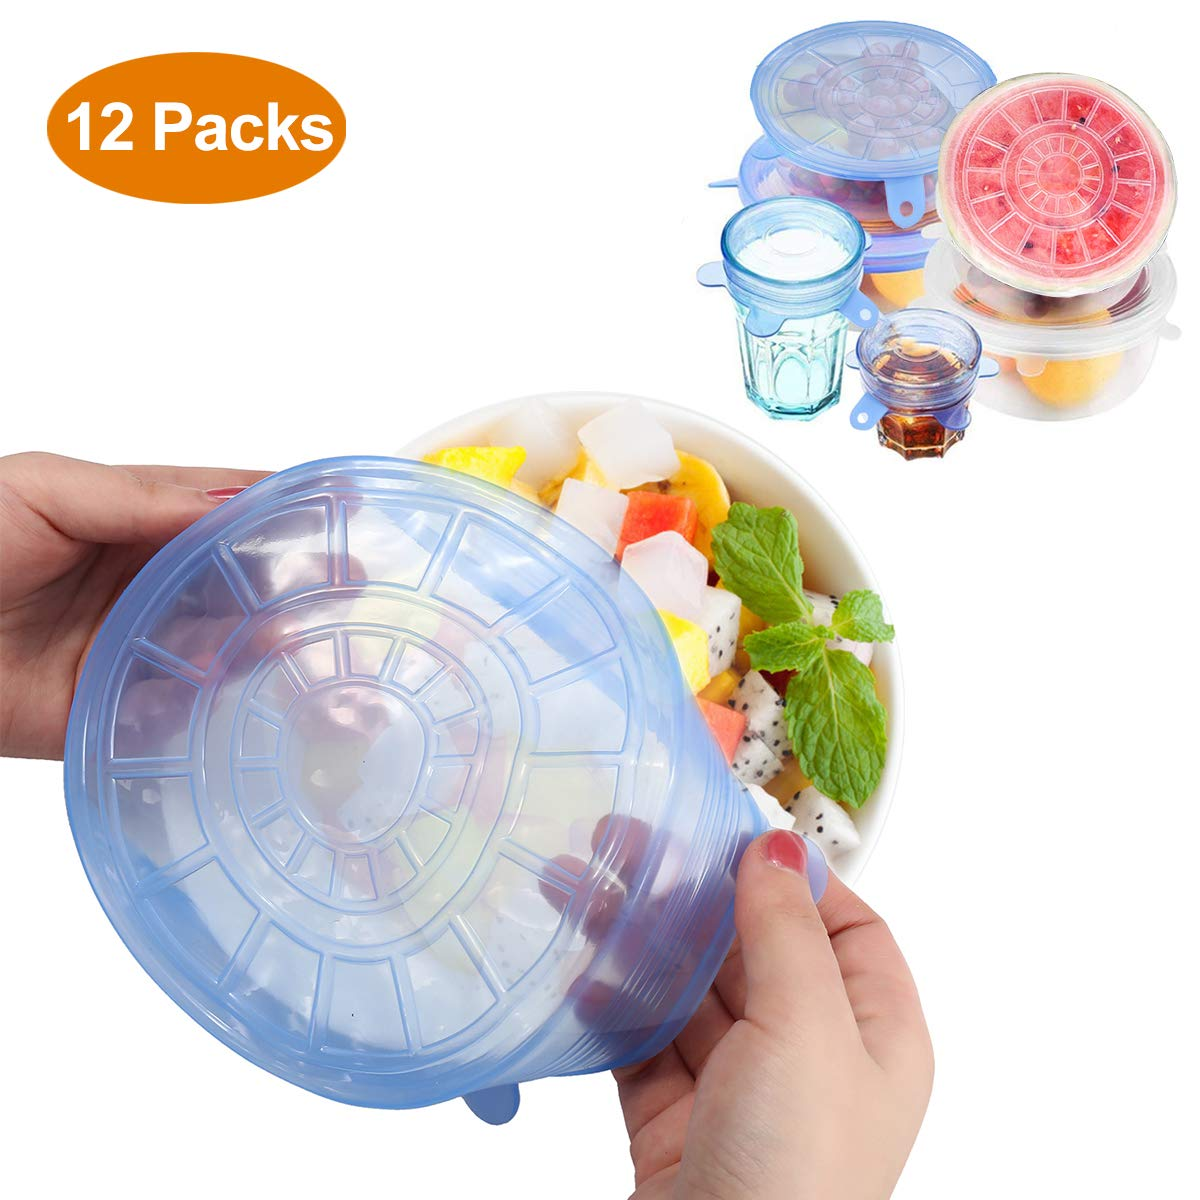 GEMITTO 12 Packs Silicone Lids, Food Grade Reusable Stretchable Bowl Cup Lid, Natural Odorless Silicone Can Covers, 6 Sizes for Plate Bottle, Safe for Dishwasher, Microwave and Freezer, Blue & White